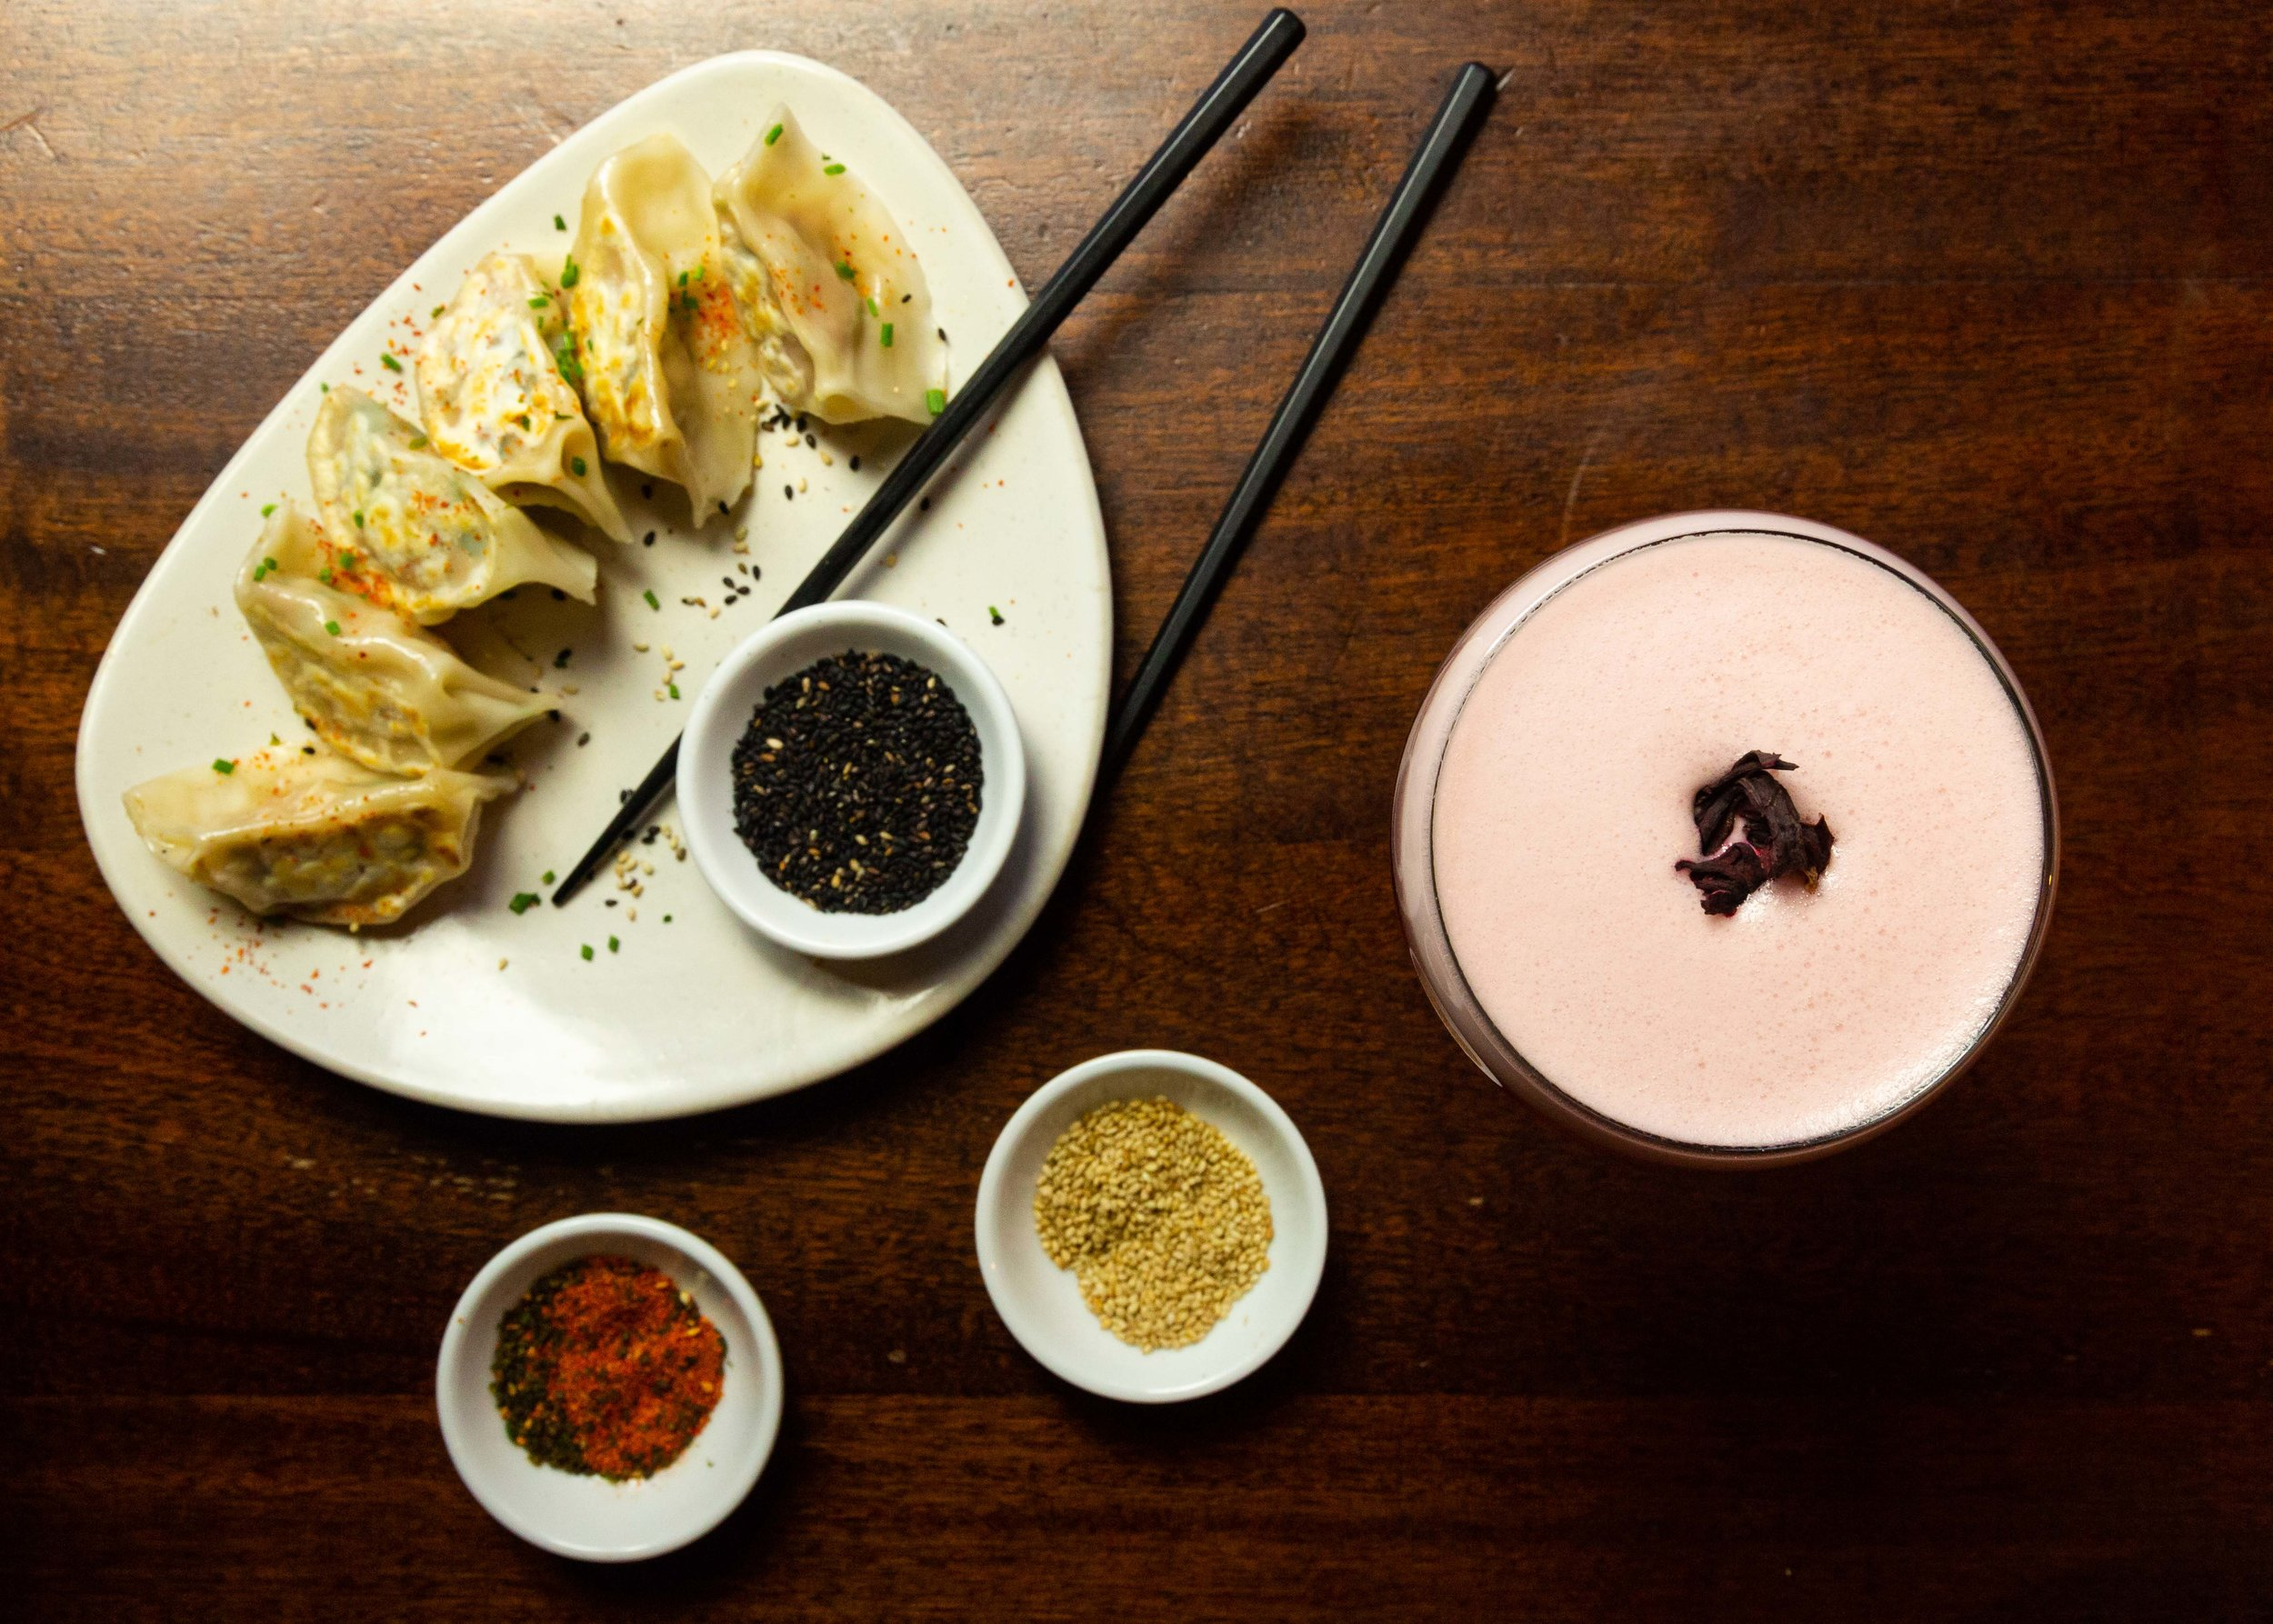 Yasai (vegetable) Gyoza pictured with a house cocktail. Regularly served with a sweet and tangy gyoza sauce